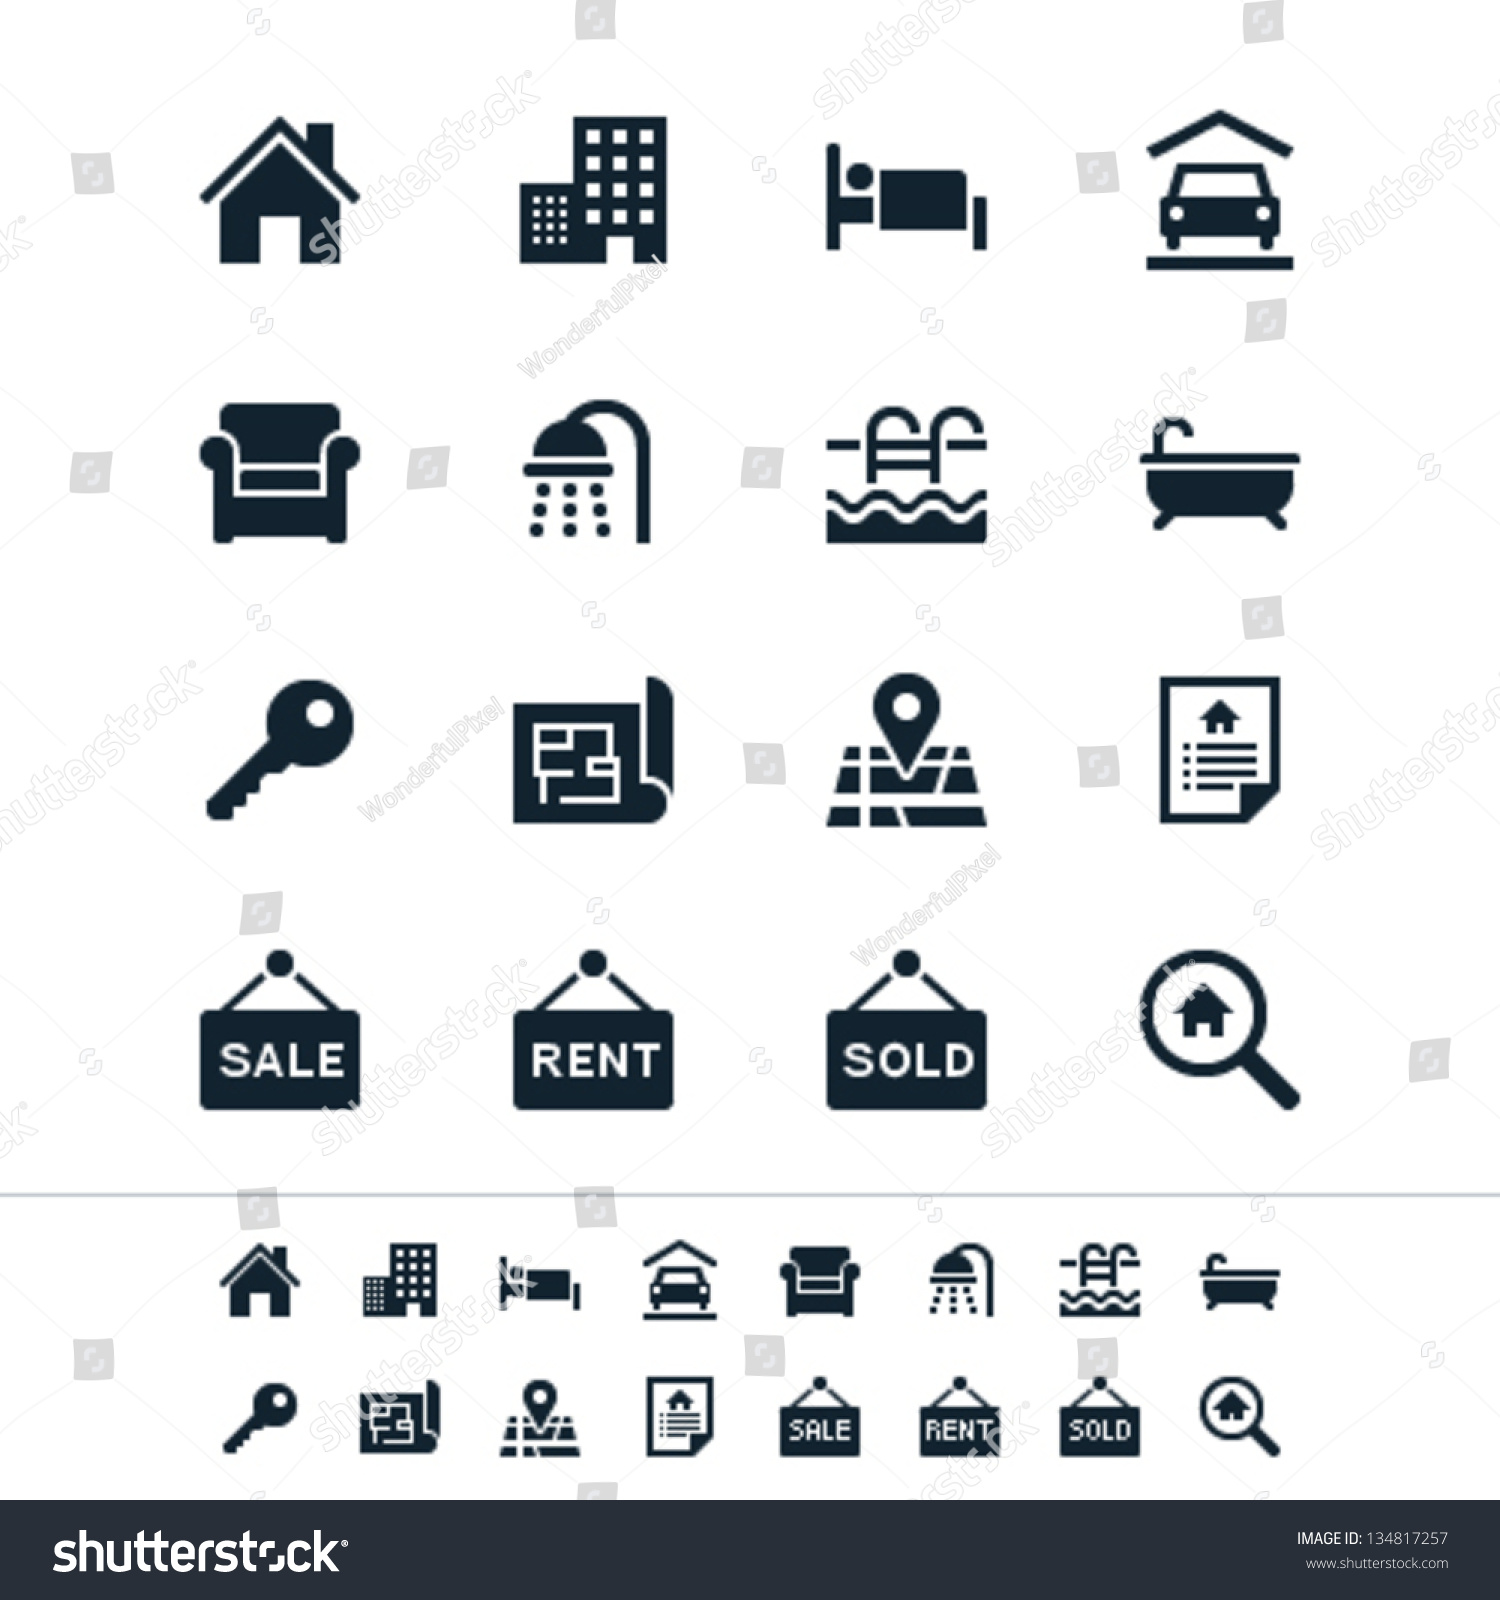 134817257 Shutterstock on office floor plan symbols furniture